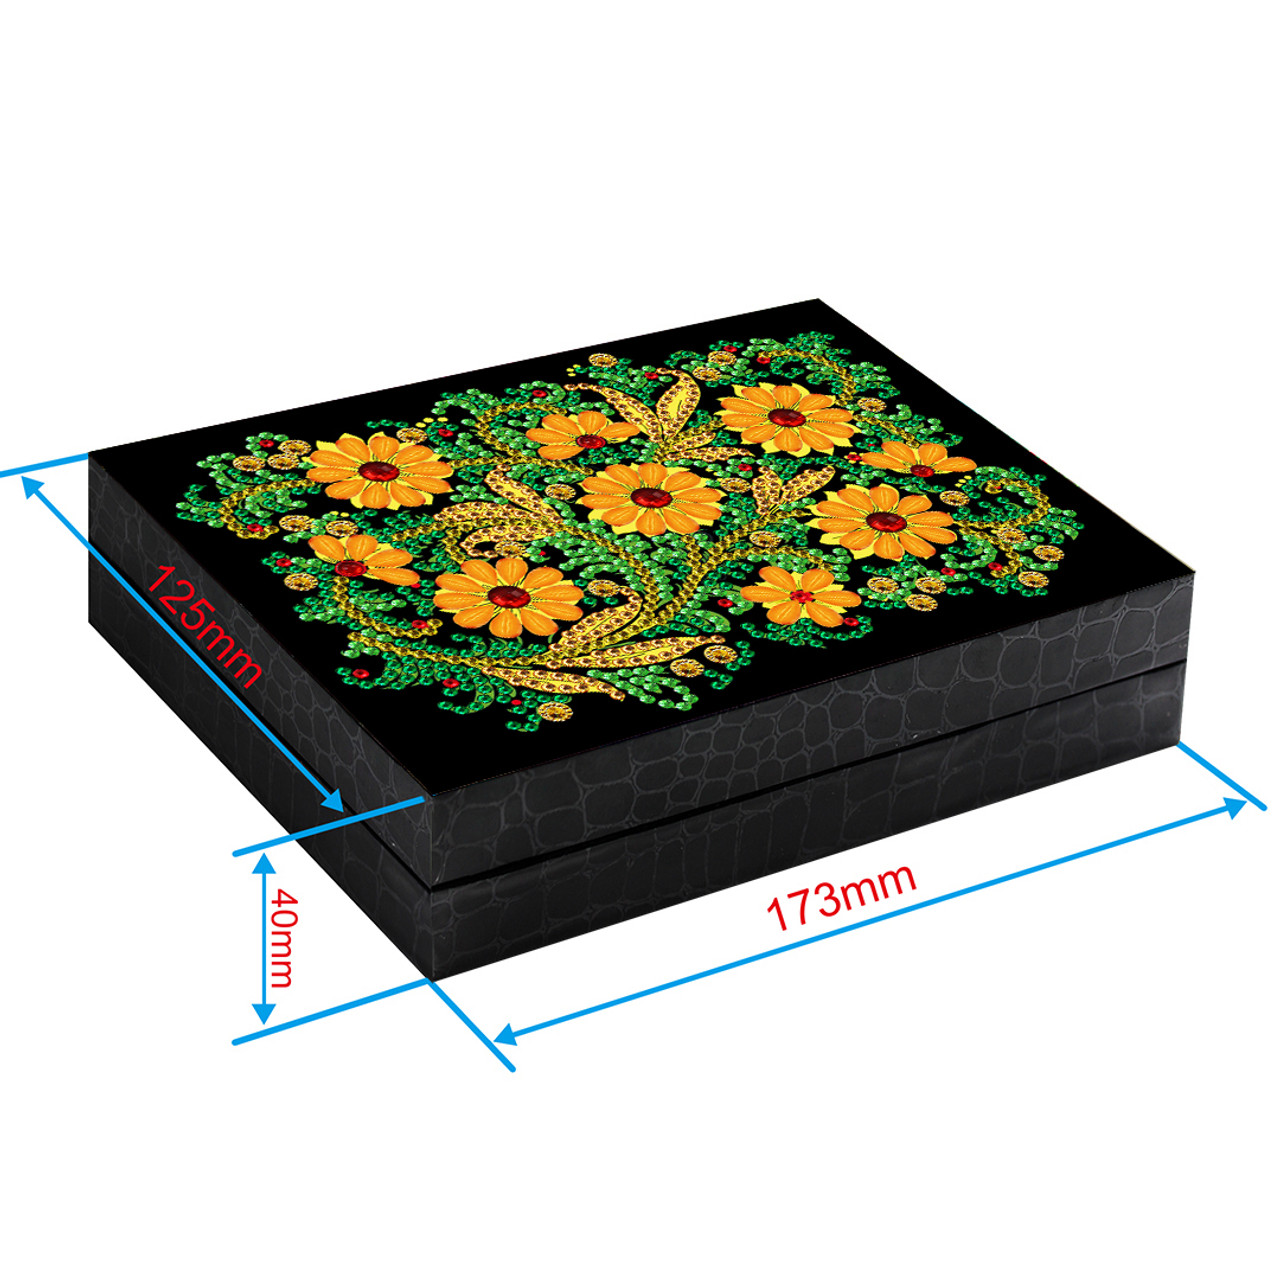 5D Diamond Painting Box - SHH10 Flowers